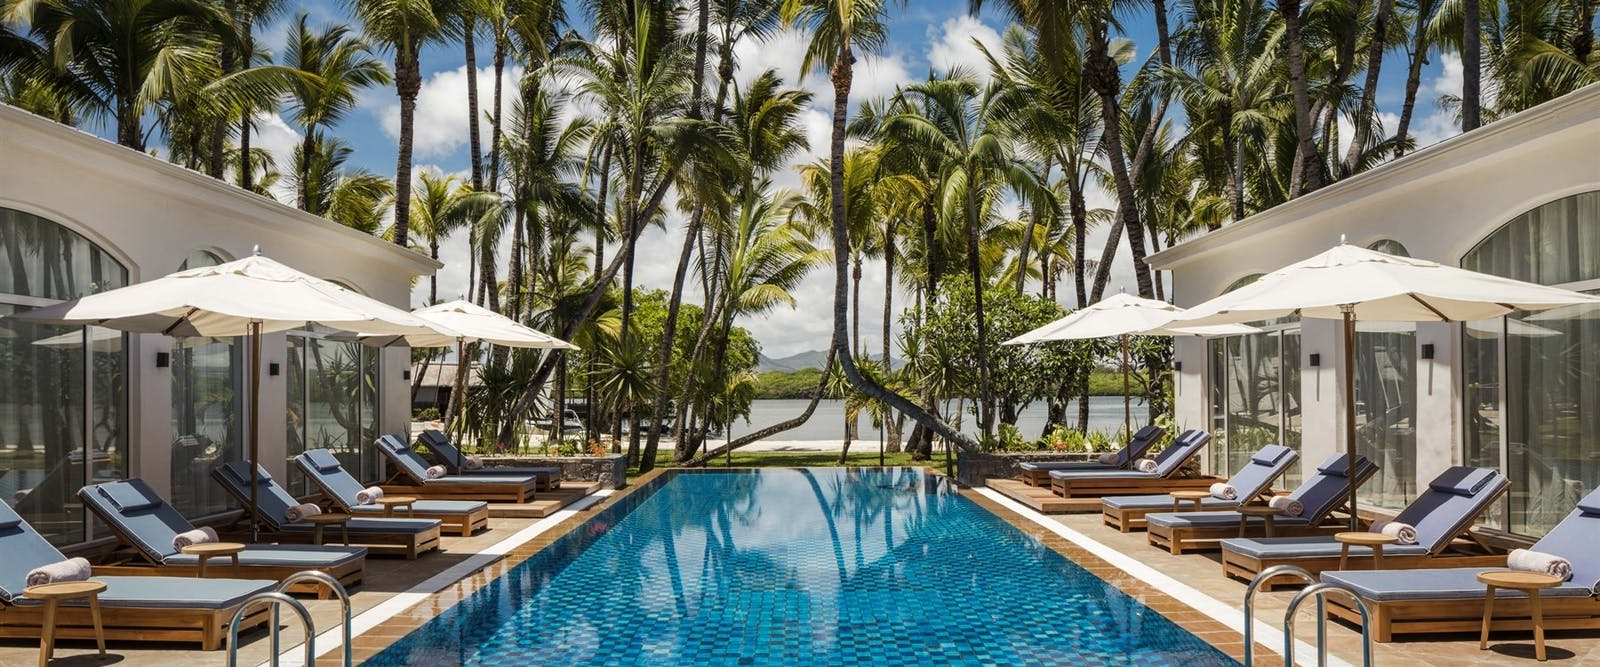 Spa Pool at One&Only Le Saint Geran, Mauritius